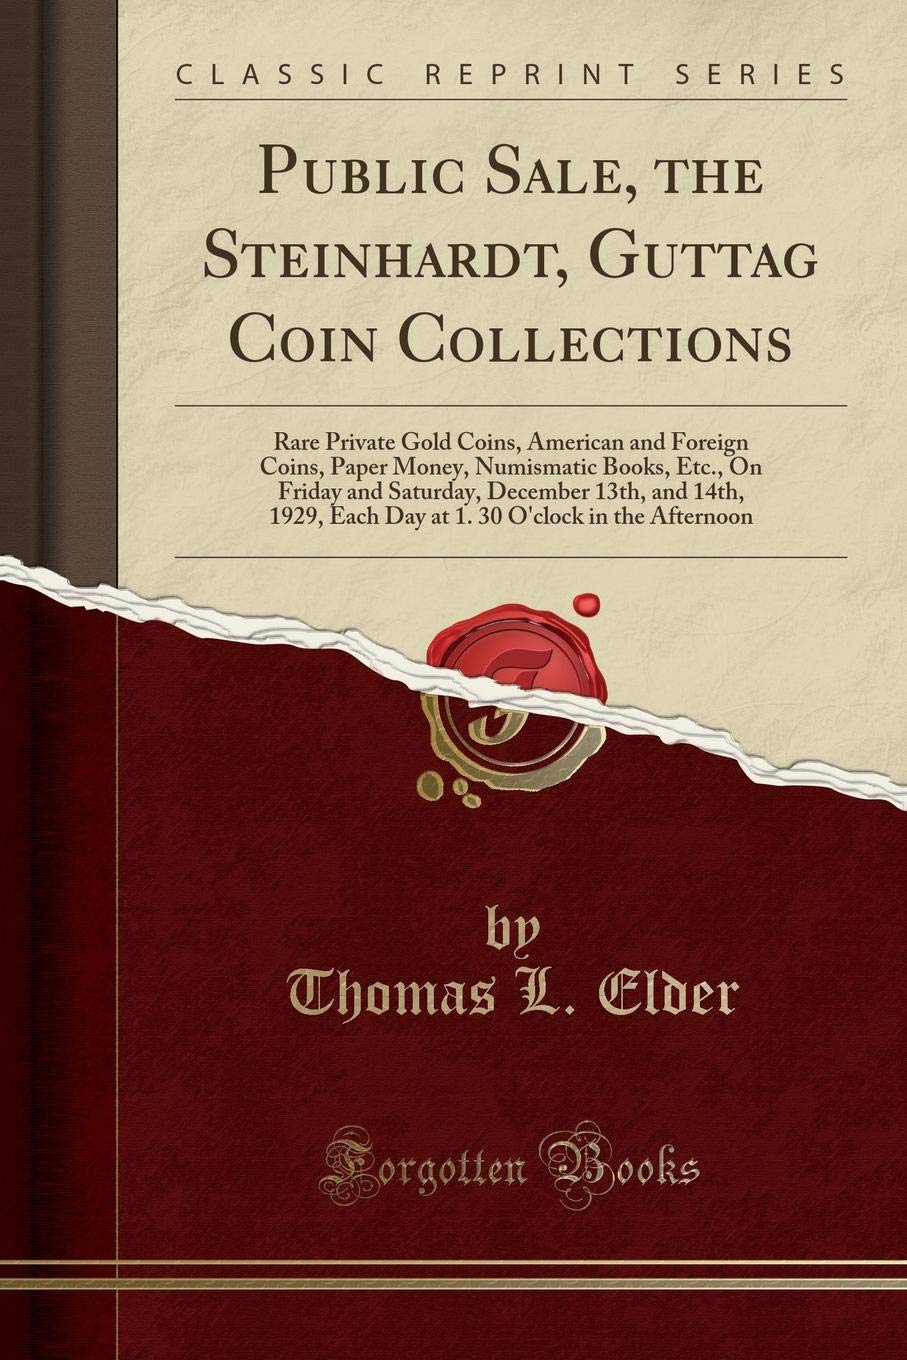 Download Public Sale, the Steinhardt, Guttag Coin Collections: Rare Private Gold Coins, American and Foreign Coins, Paper Money, Numismatic Books, Etc., On ... Each Day at 1. 30 O'clock in the Afternoon PDF